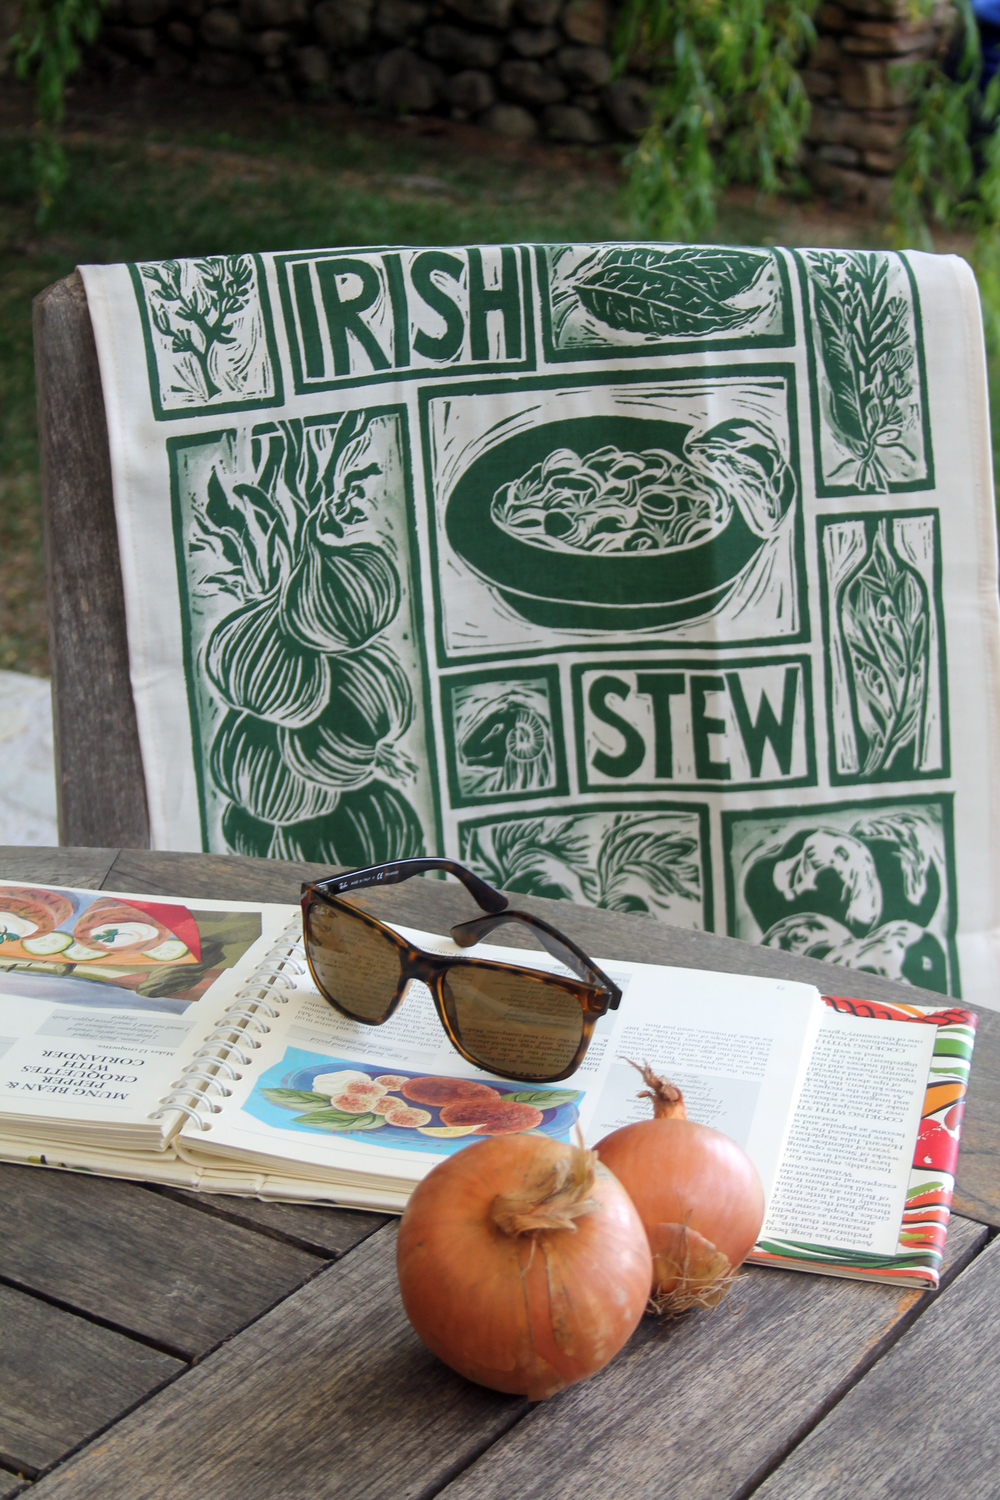 Cardabelle-Design-Irish-Stew-Recipe-Yea-Towel-garden-cooking.jpg